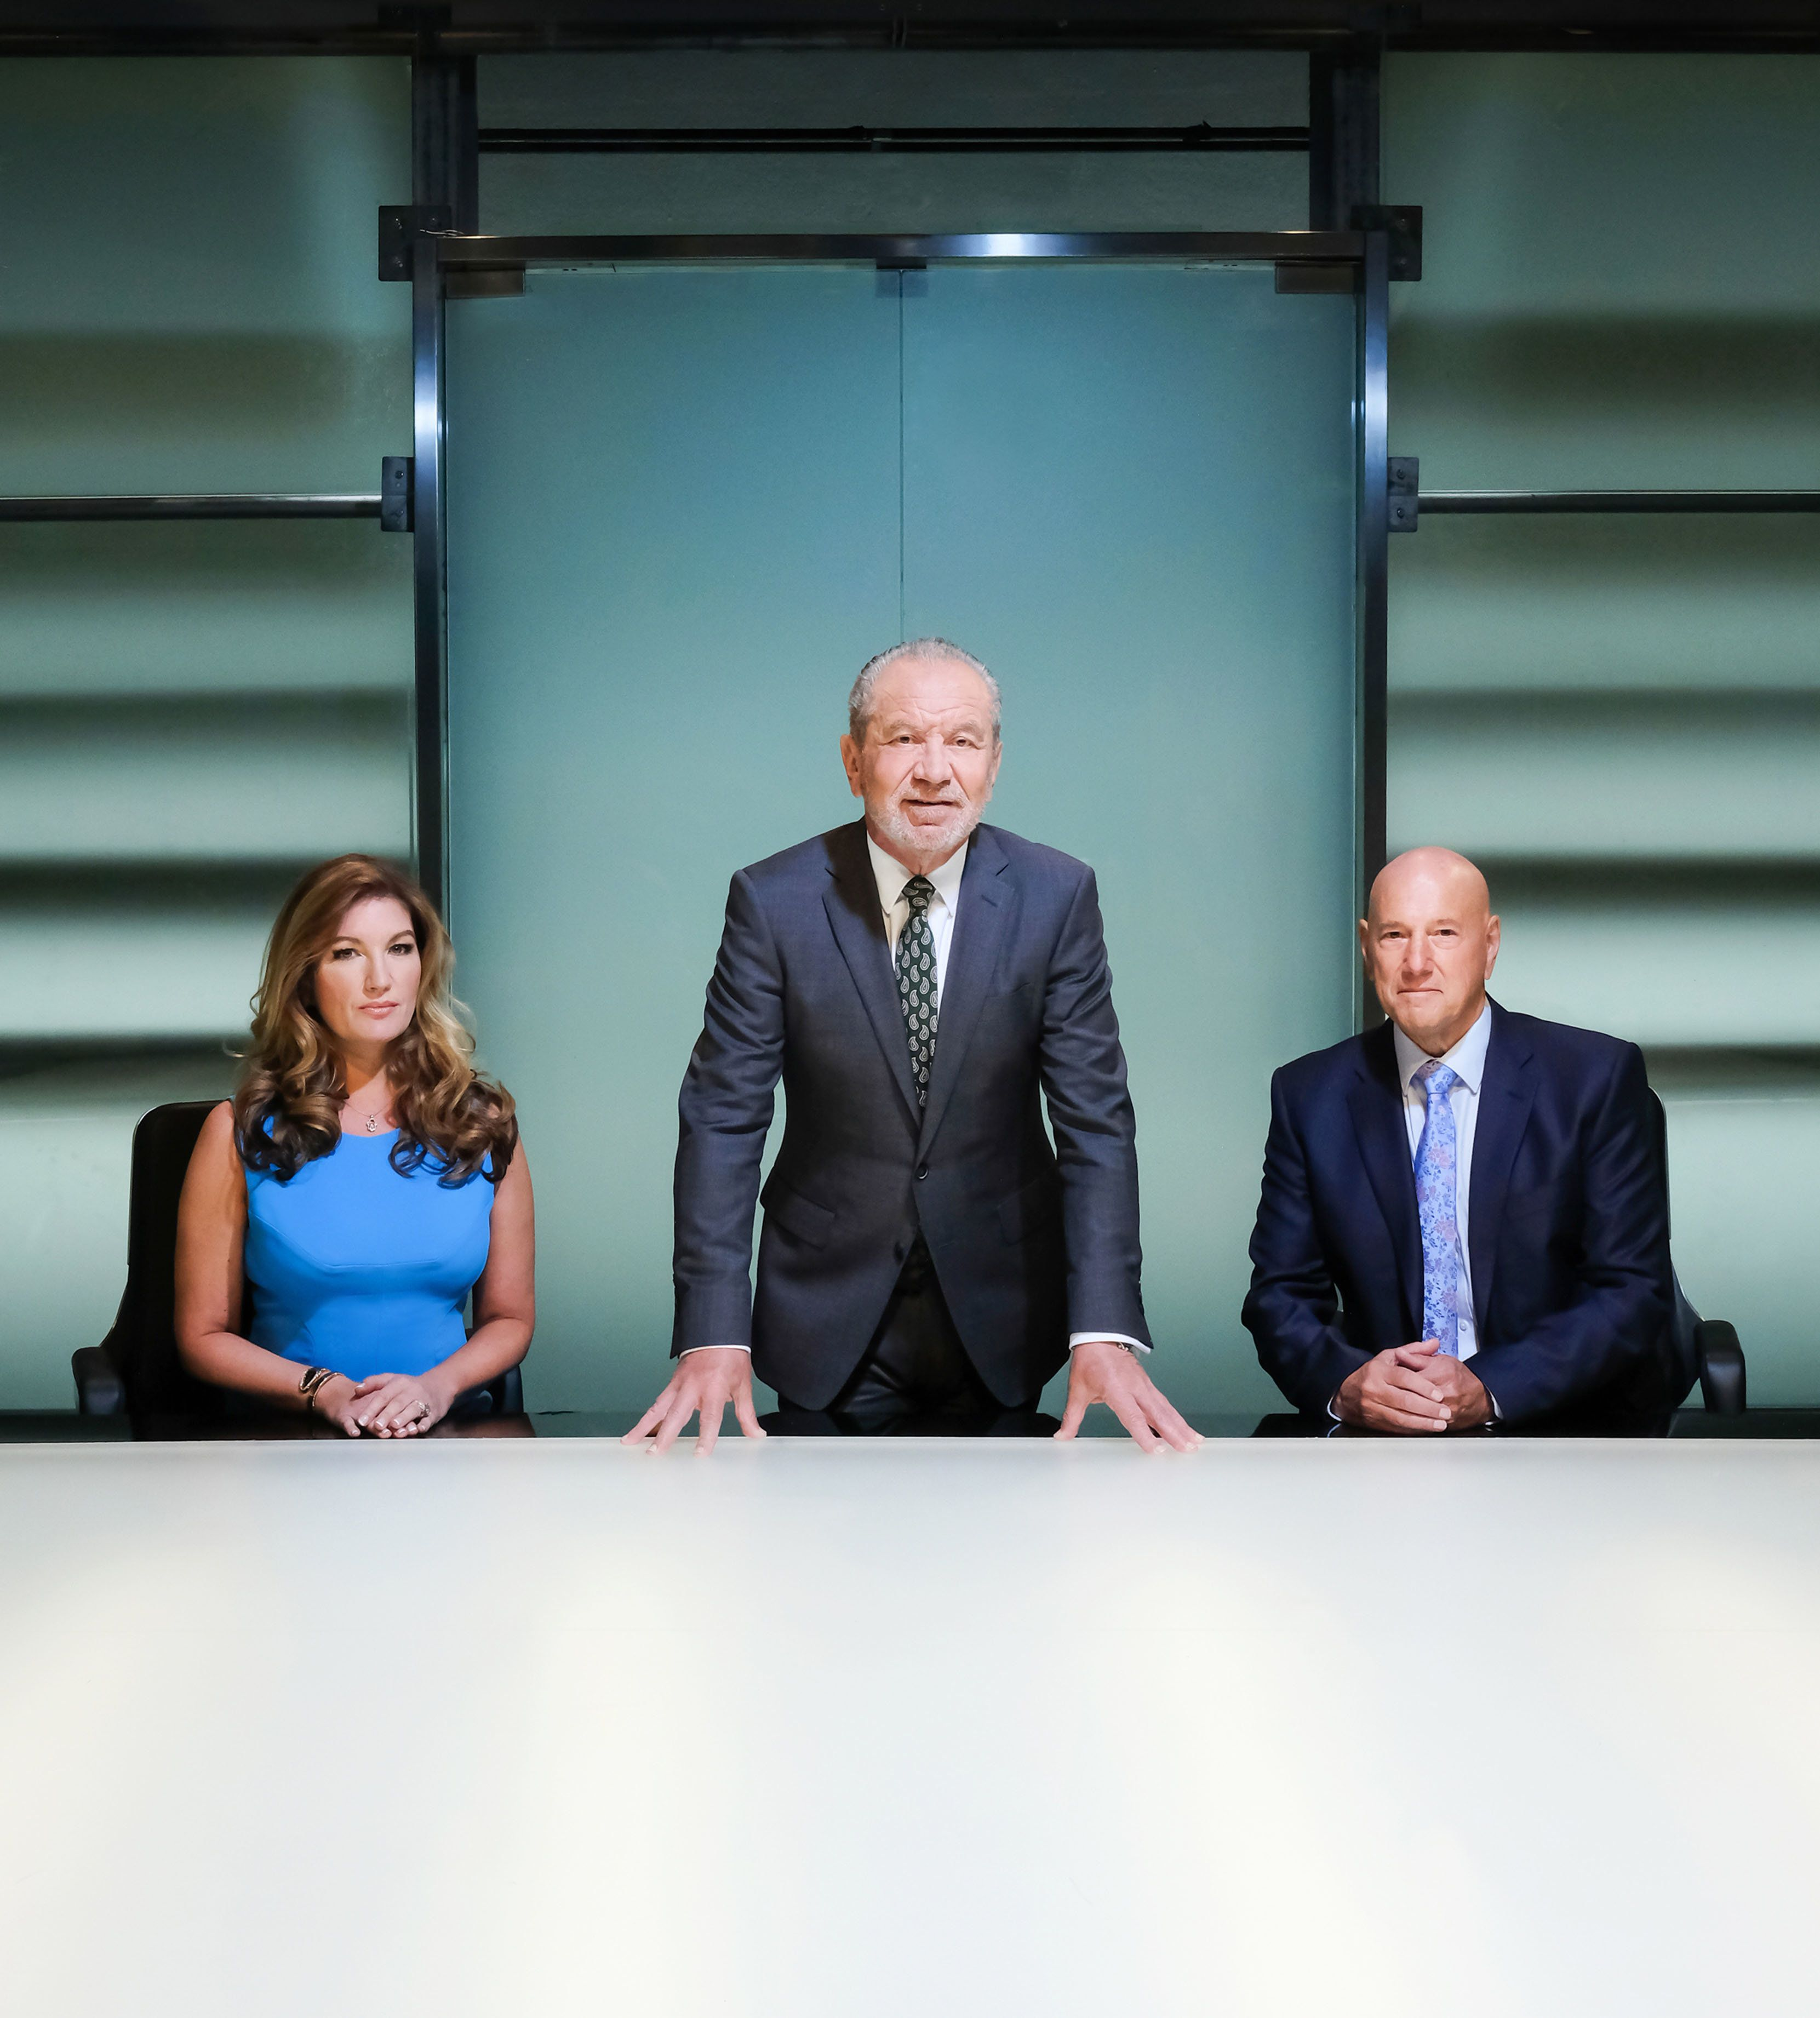 Fired 'Apprentice' Candidate Reveals Last-Minute Boardroom Decision